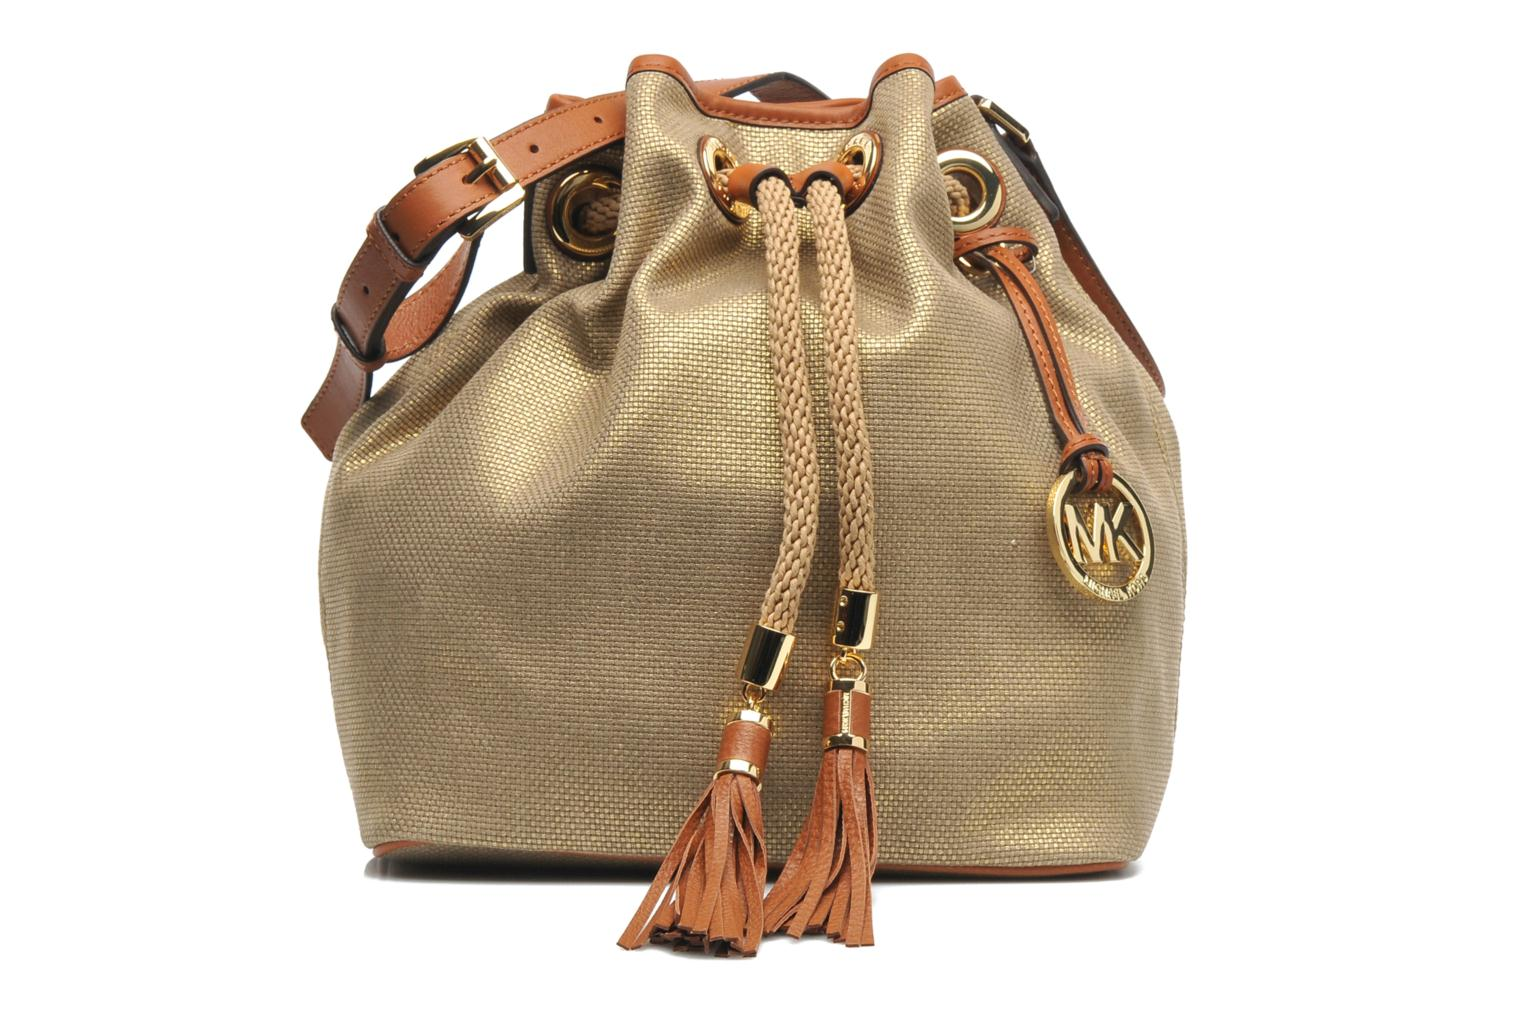 2017 Mk Handbags Michael Kors Not Only Fashion But Get It For